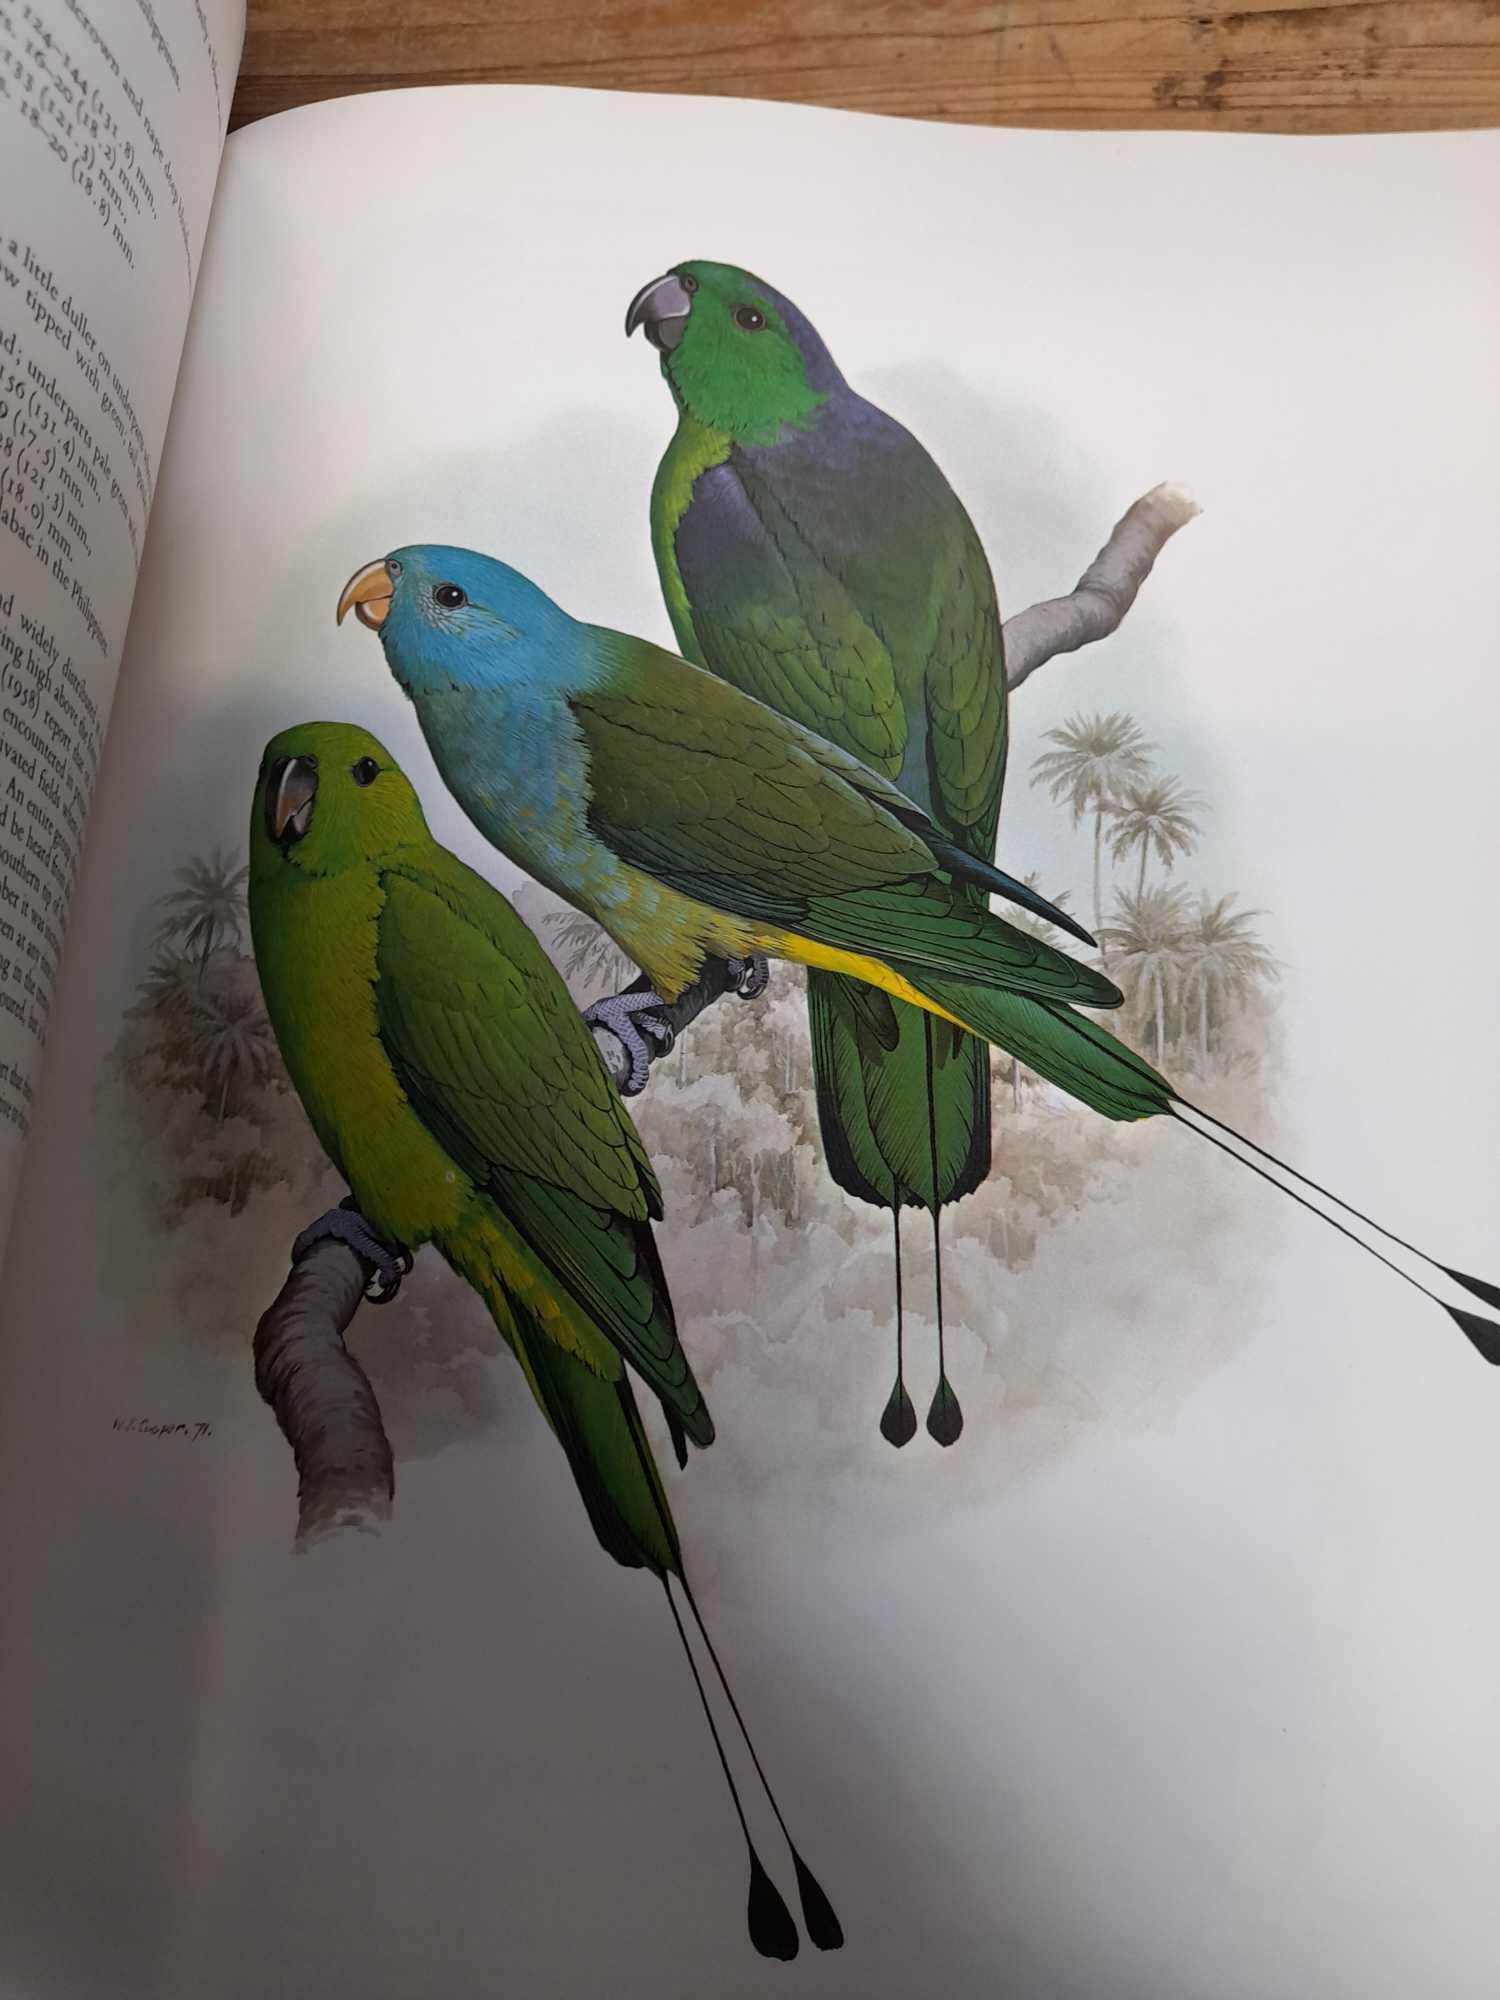 3 PARROT BOOKS - Image 19 of 20